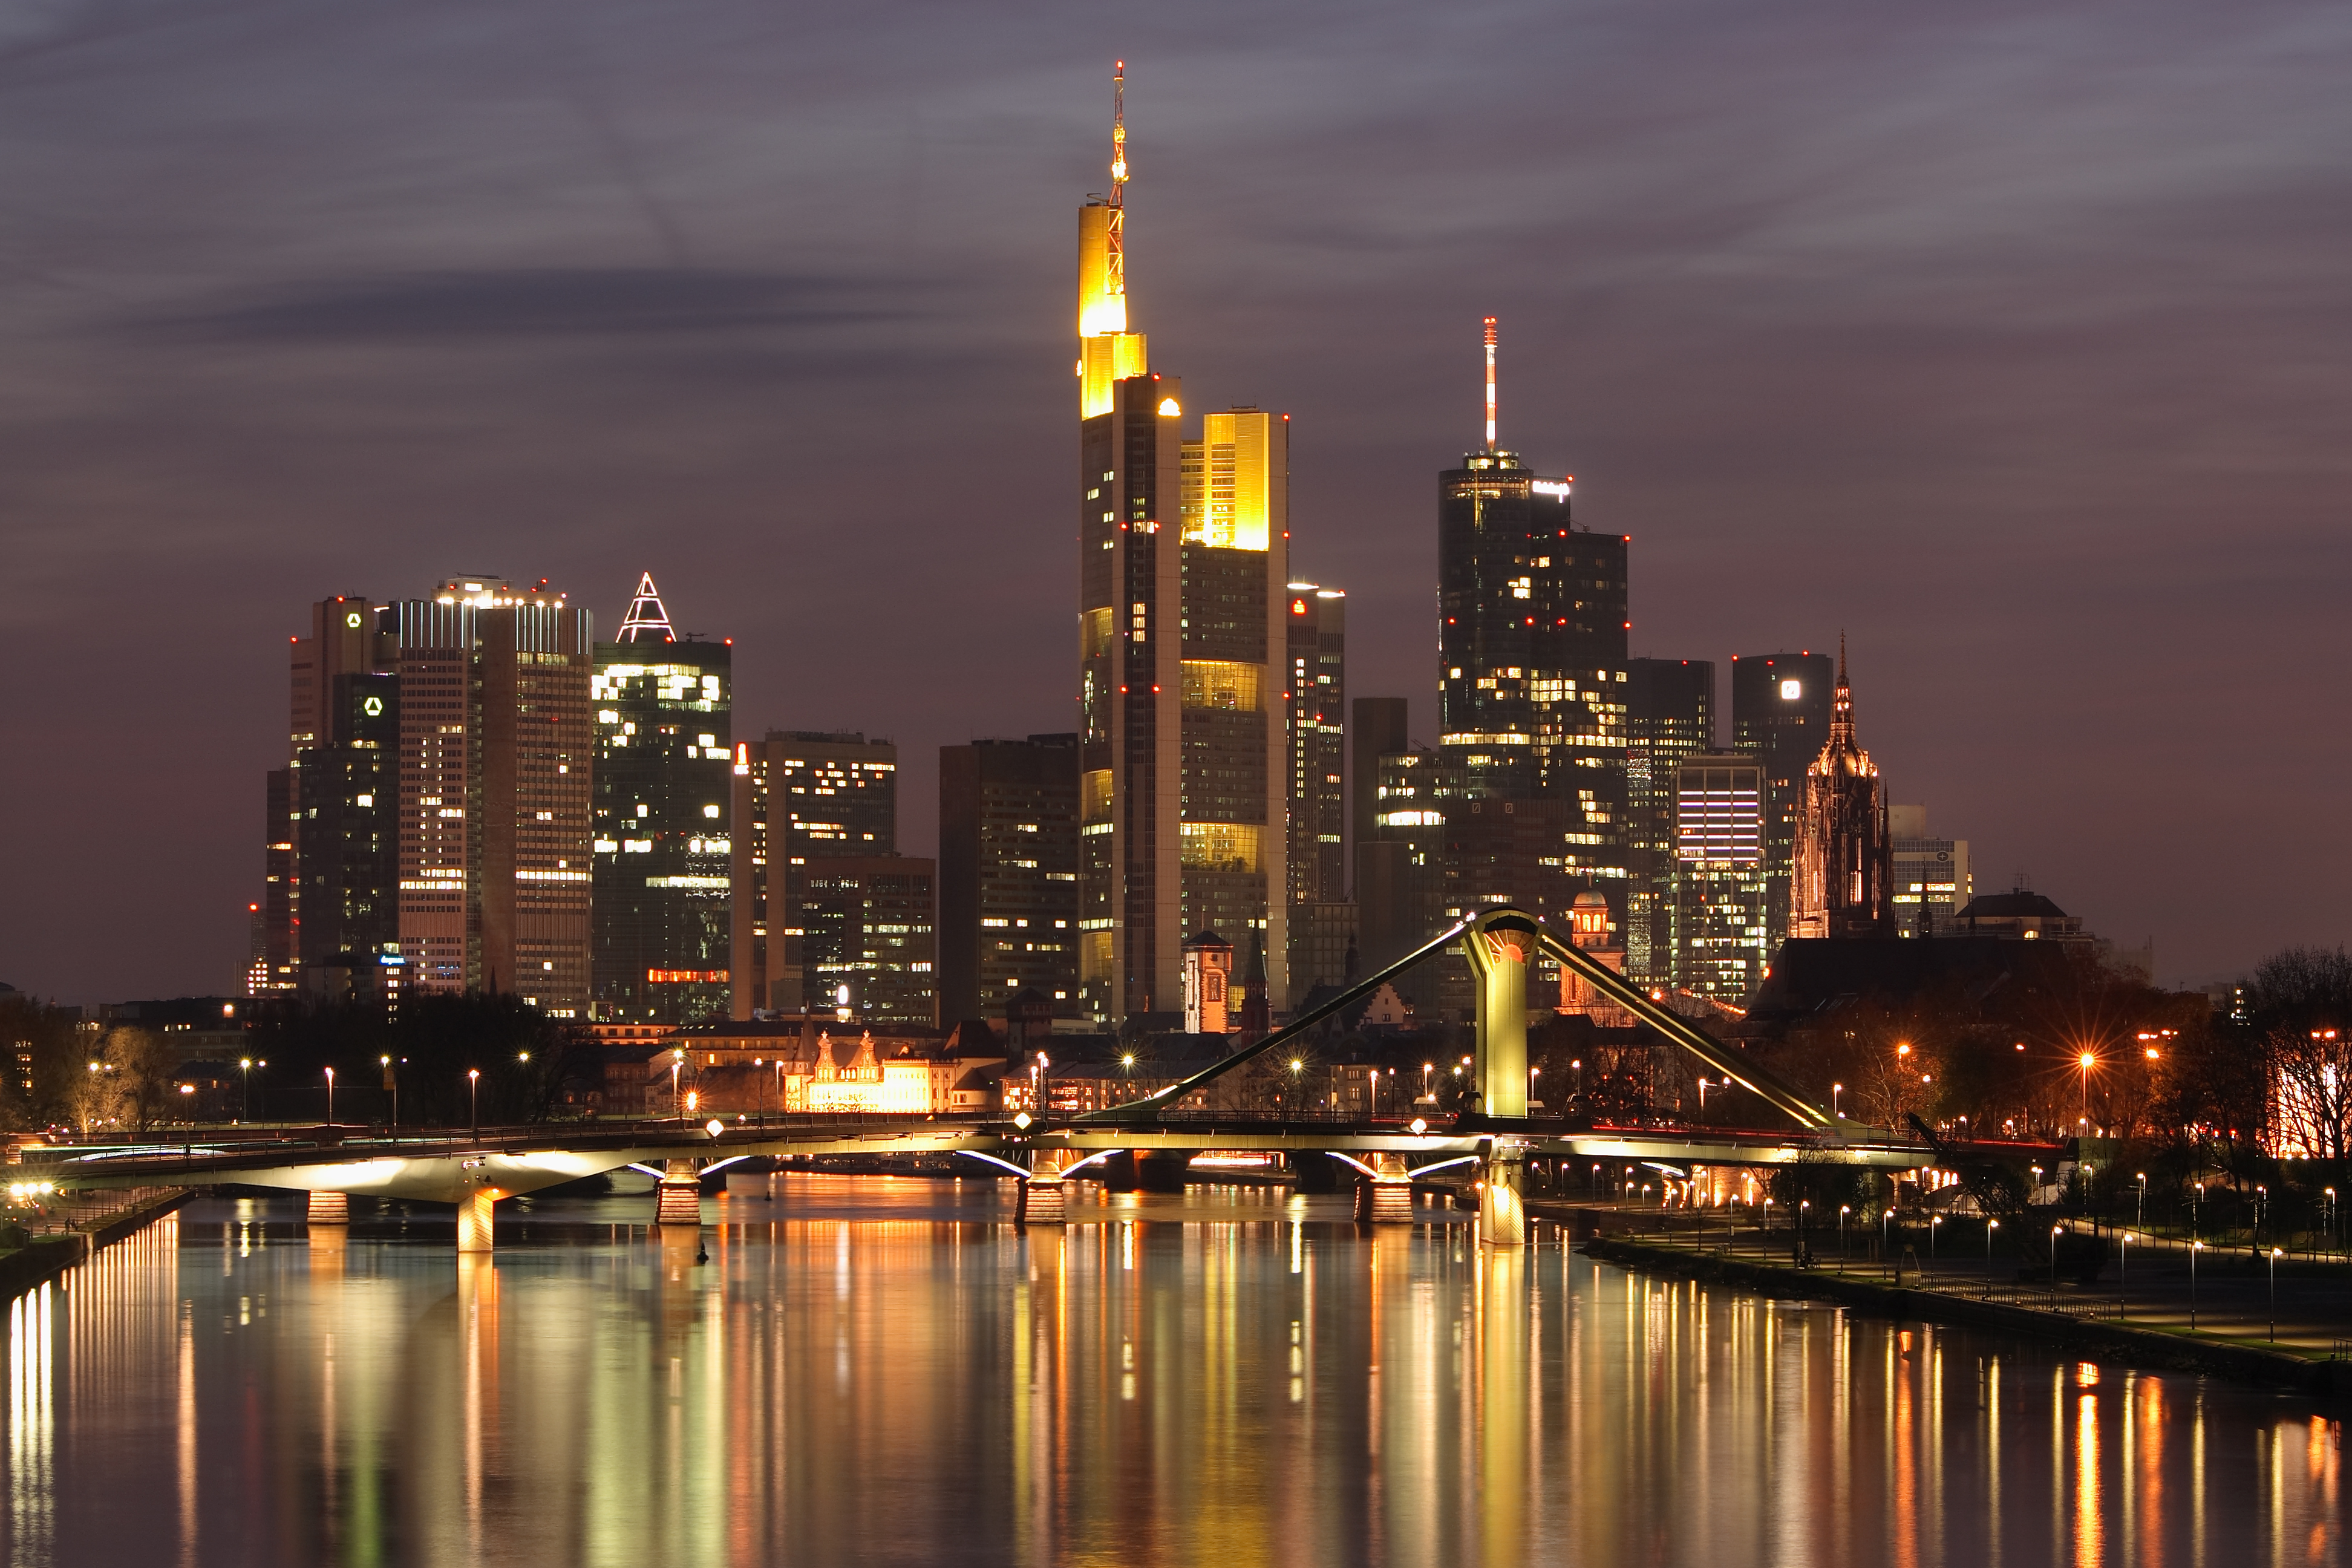 Tanım Skyline Frankfurt am Main.jpg